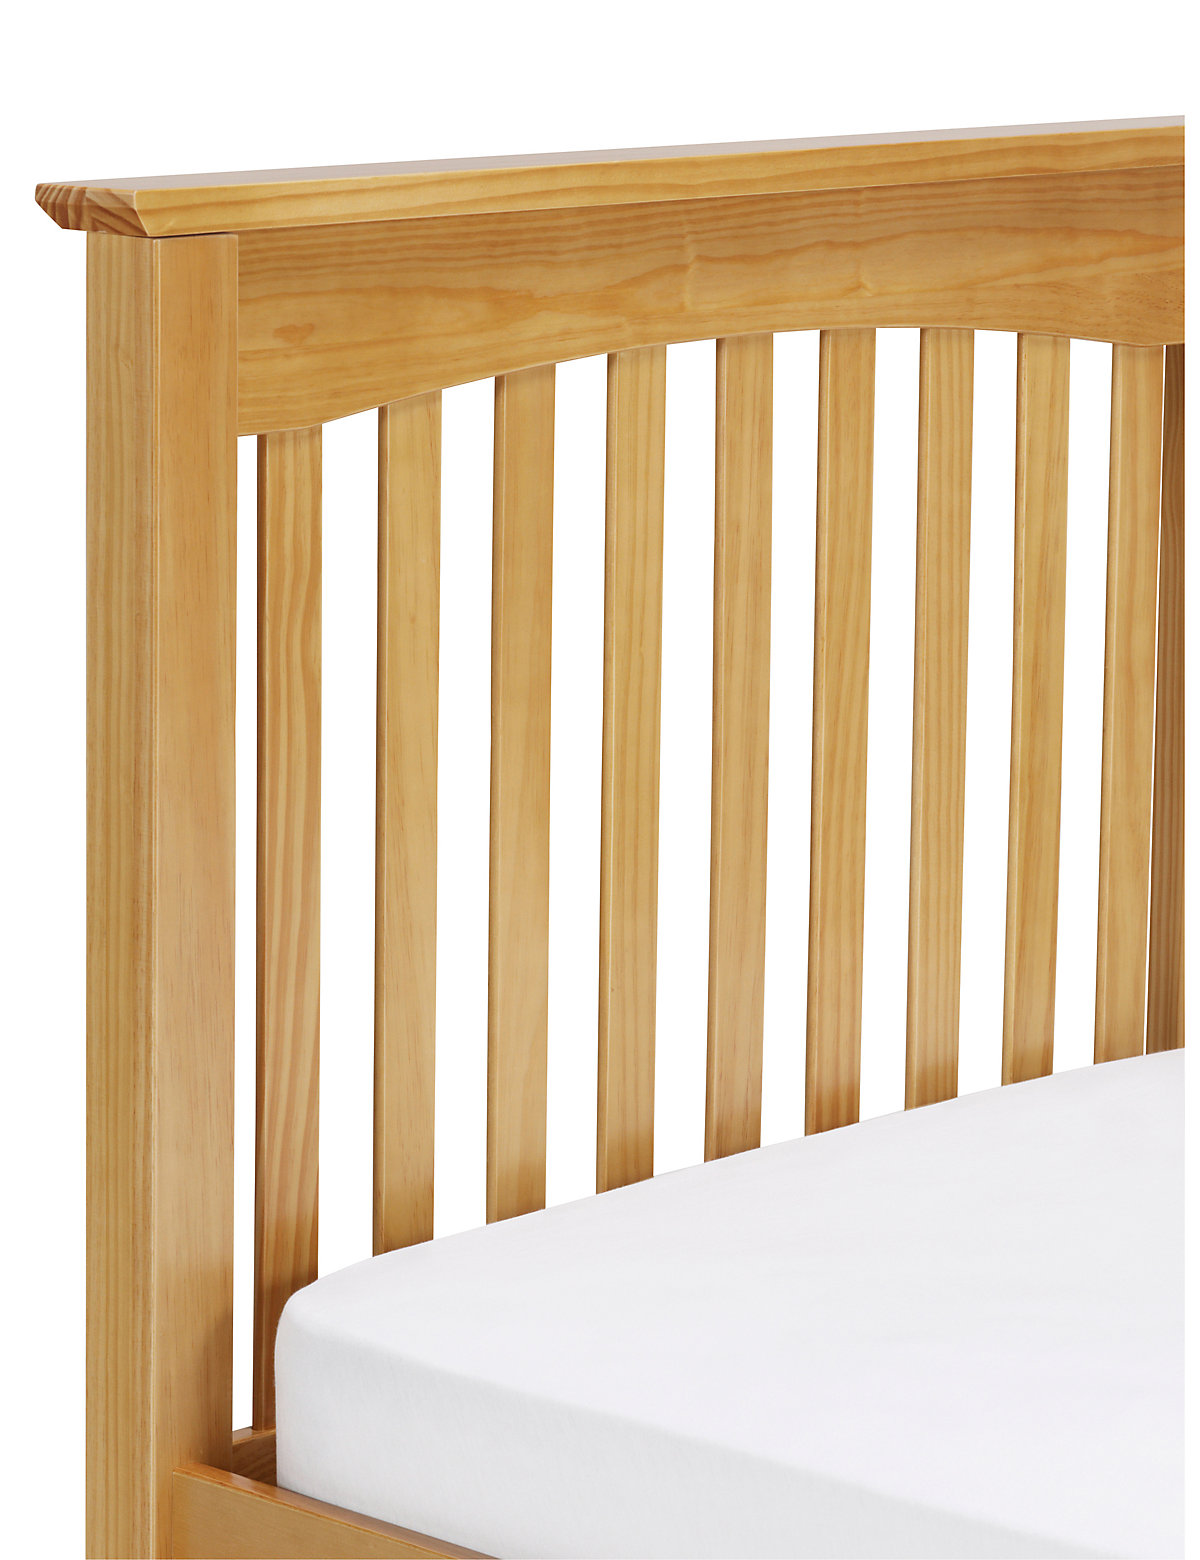 Hastings Natural Pine Childrens Guest Bed